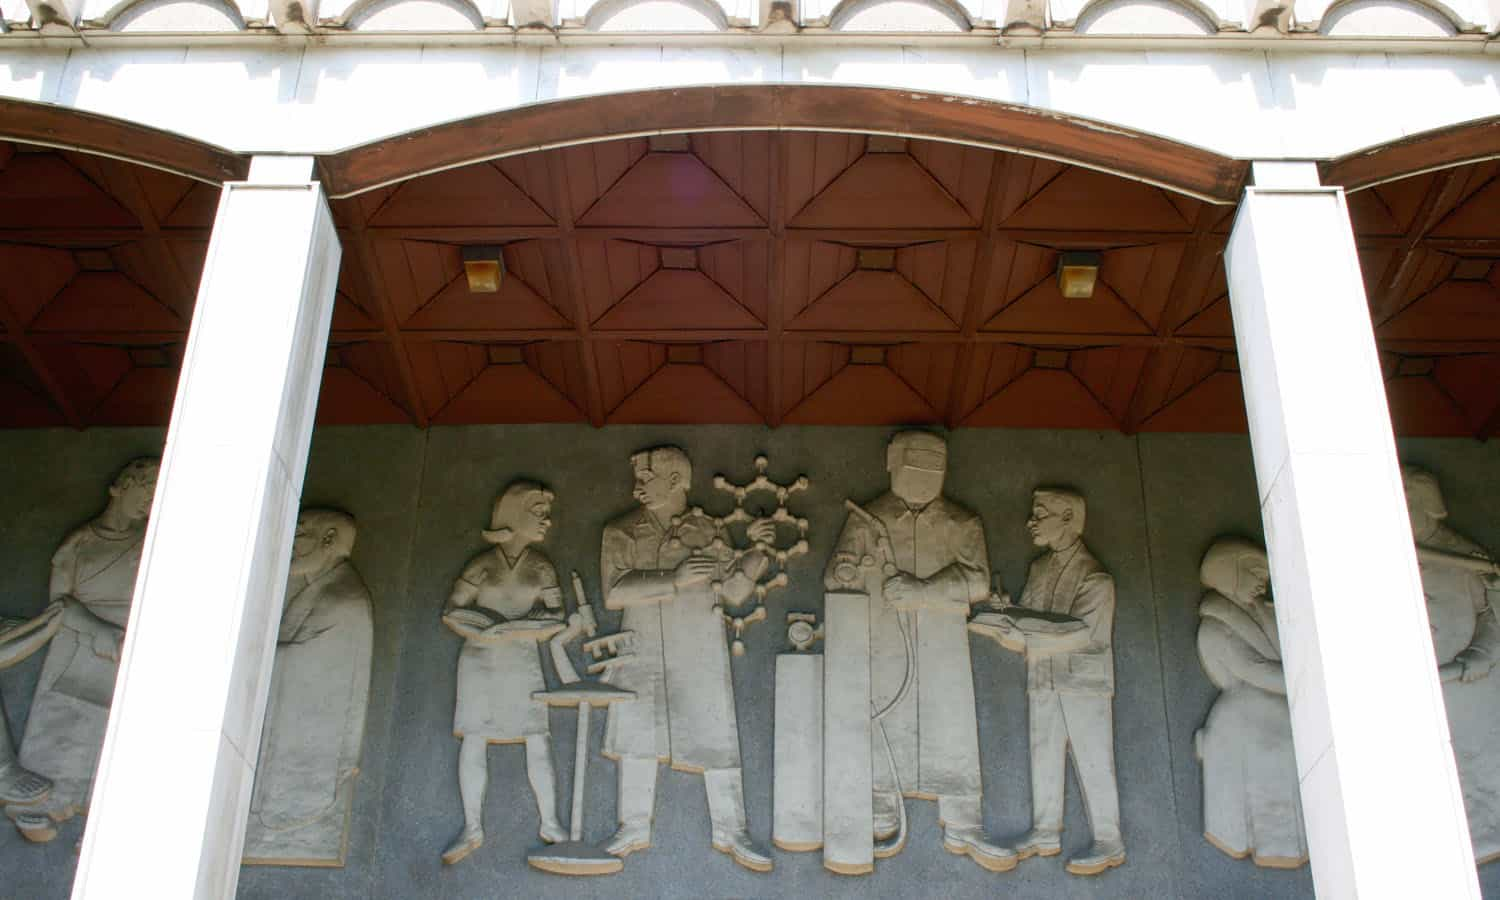 The concrete bas-relief by Joseph Gause featured education in three stages; ancient, renaissance, and modern